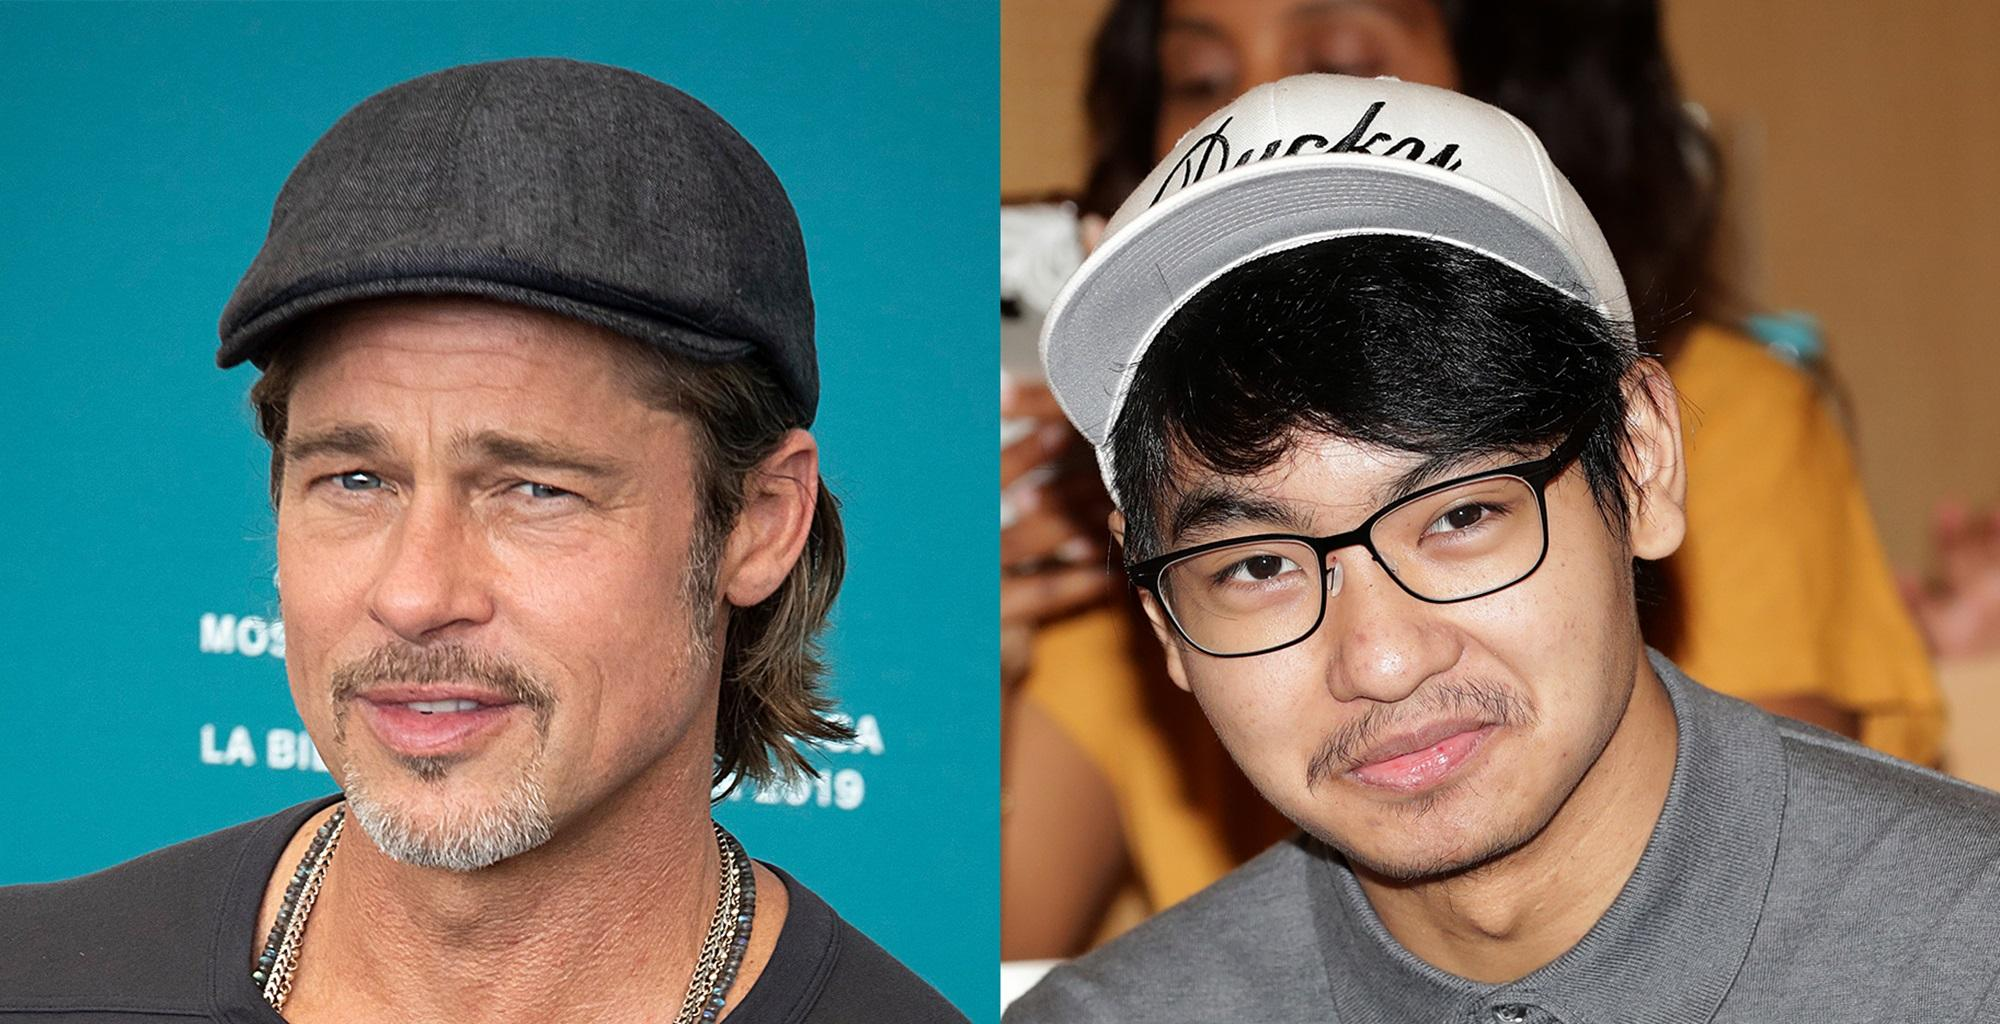 Brad Pitt Reportedly Reacts To Maddox's Viral Video From South Korea In Surprising Way